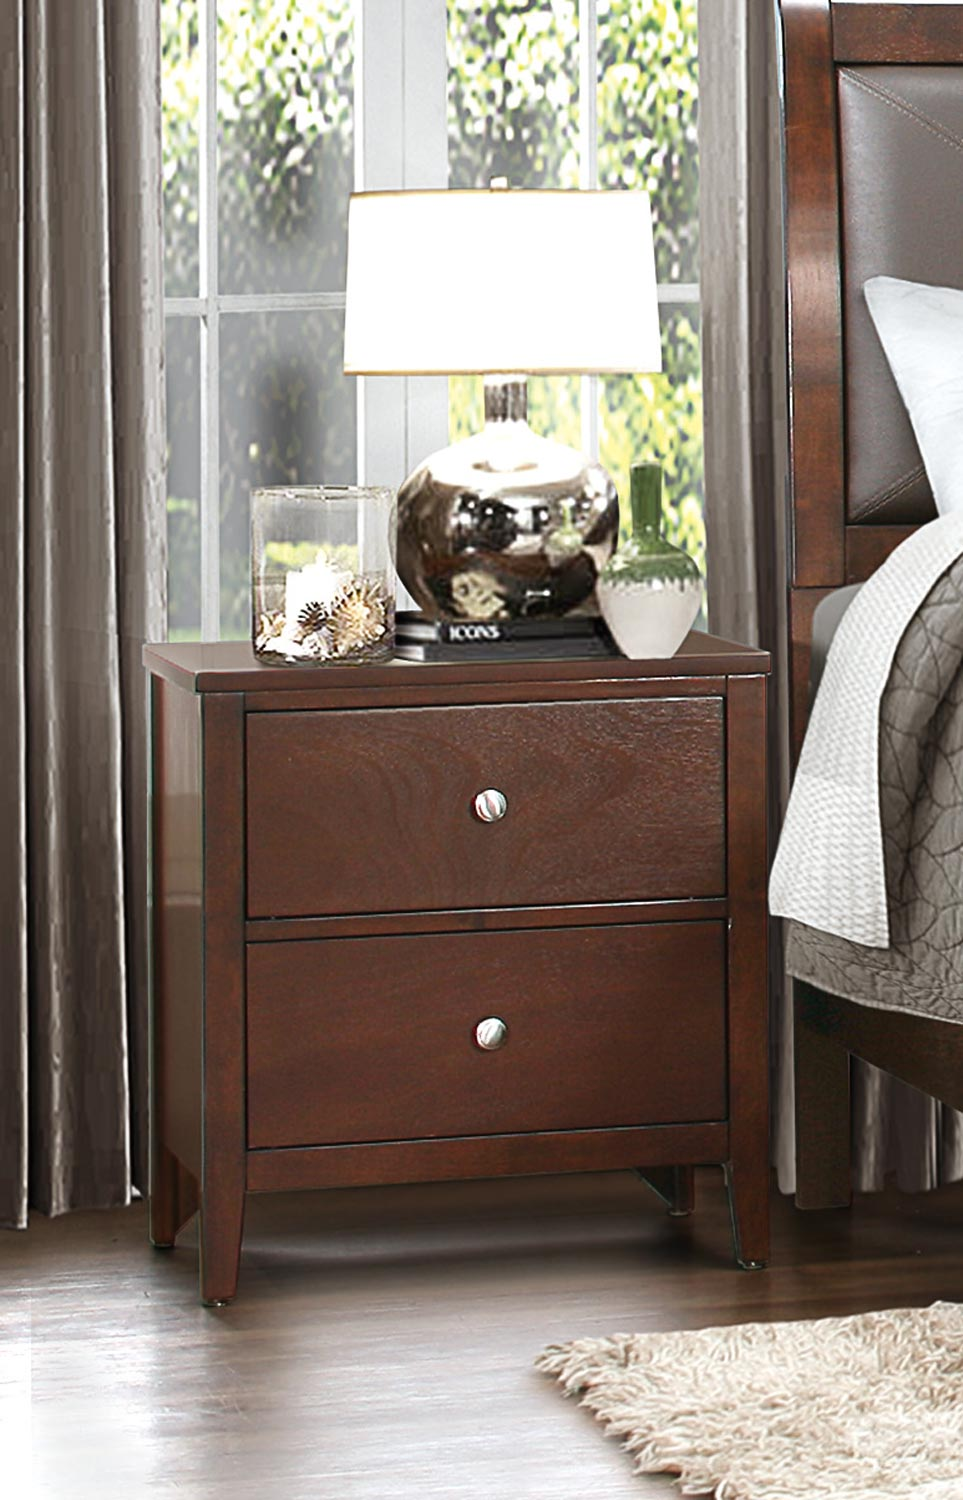 Homelegance Cullen Night Stand - Brown Cherry